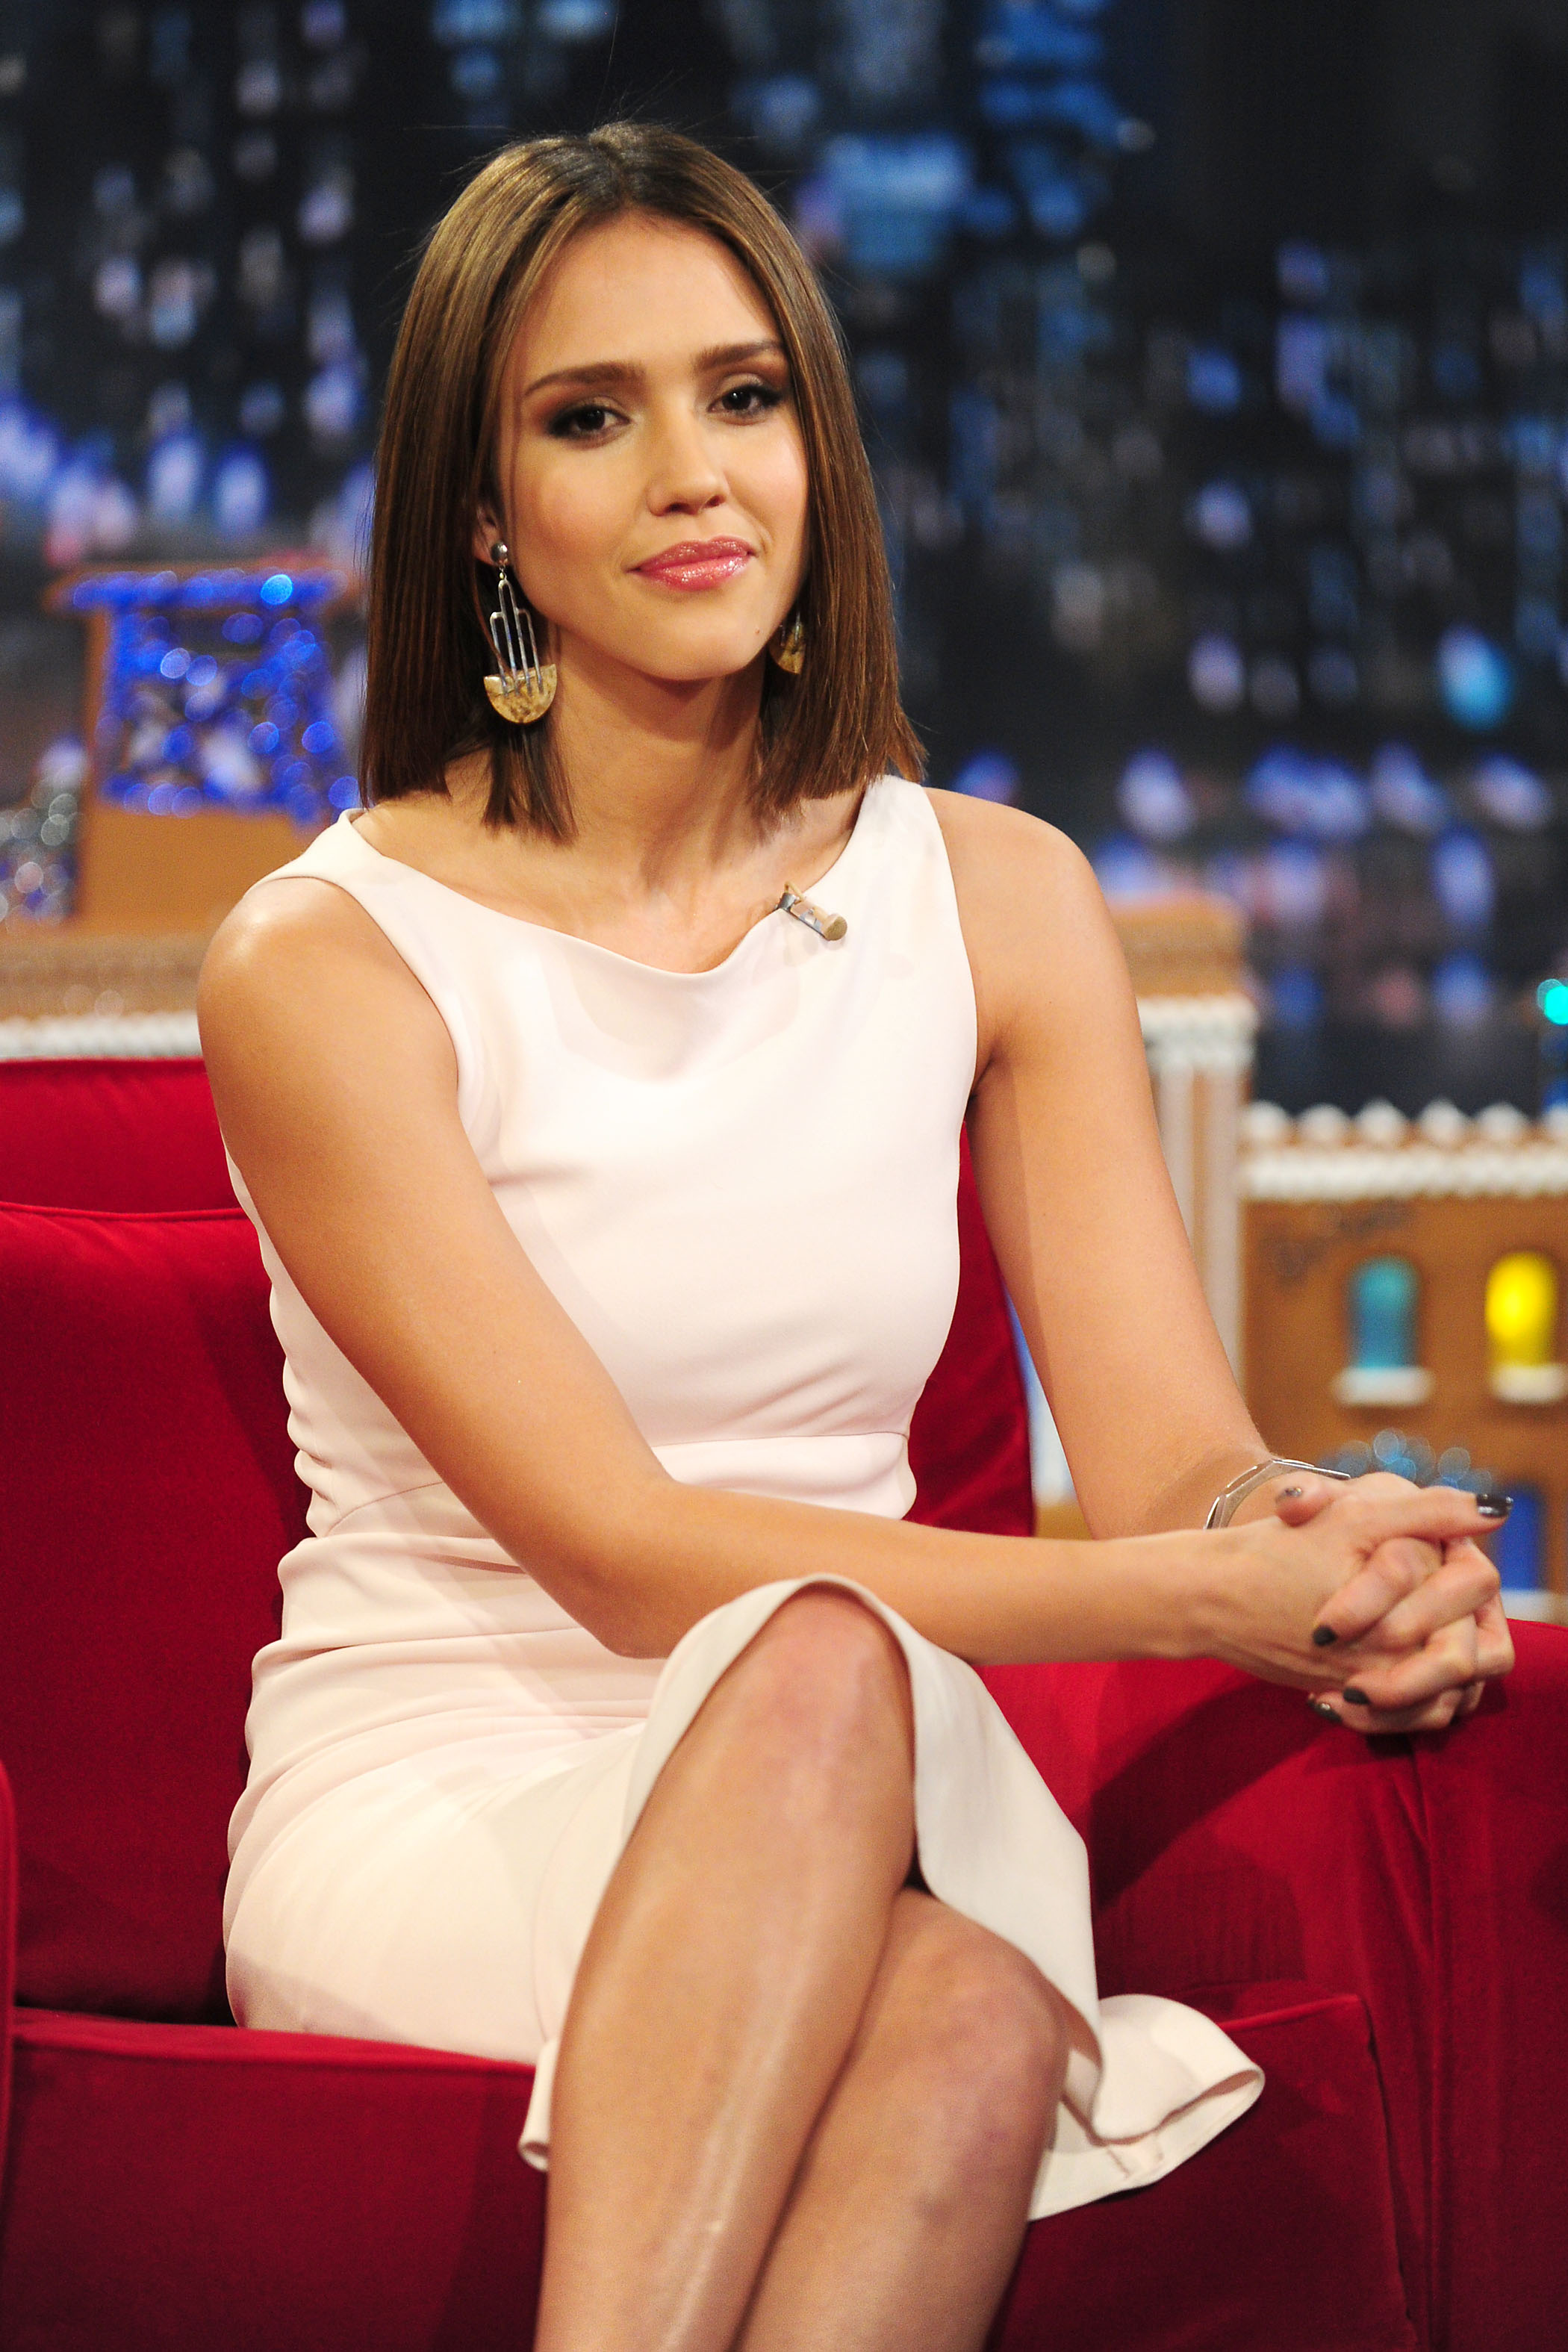 61335_Jessica_Alba_appears_on_Late_Night_with_Jimmy_Fallon7_122_584lo.jpg